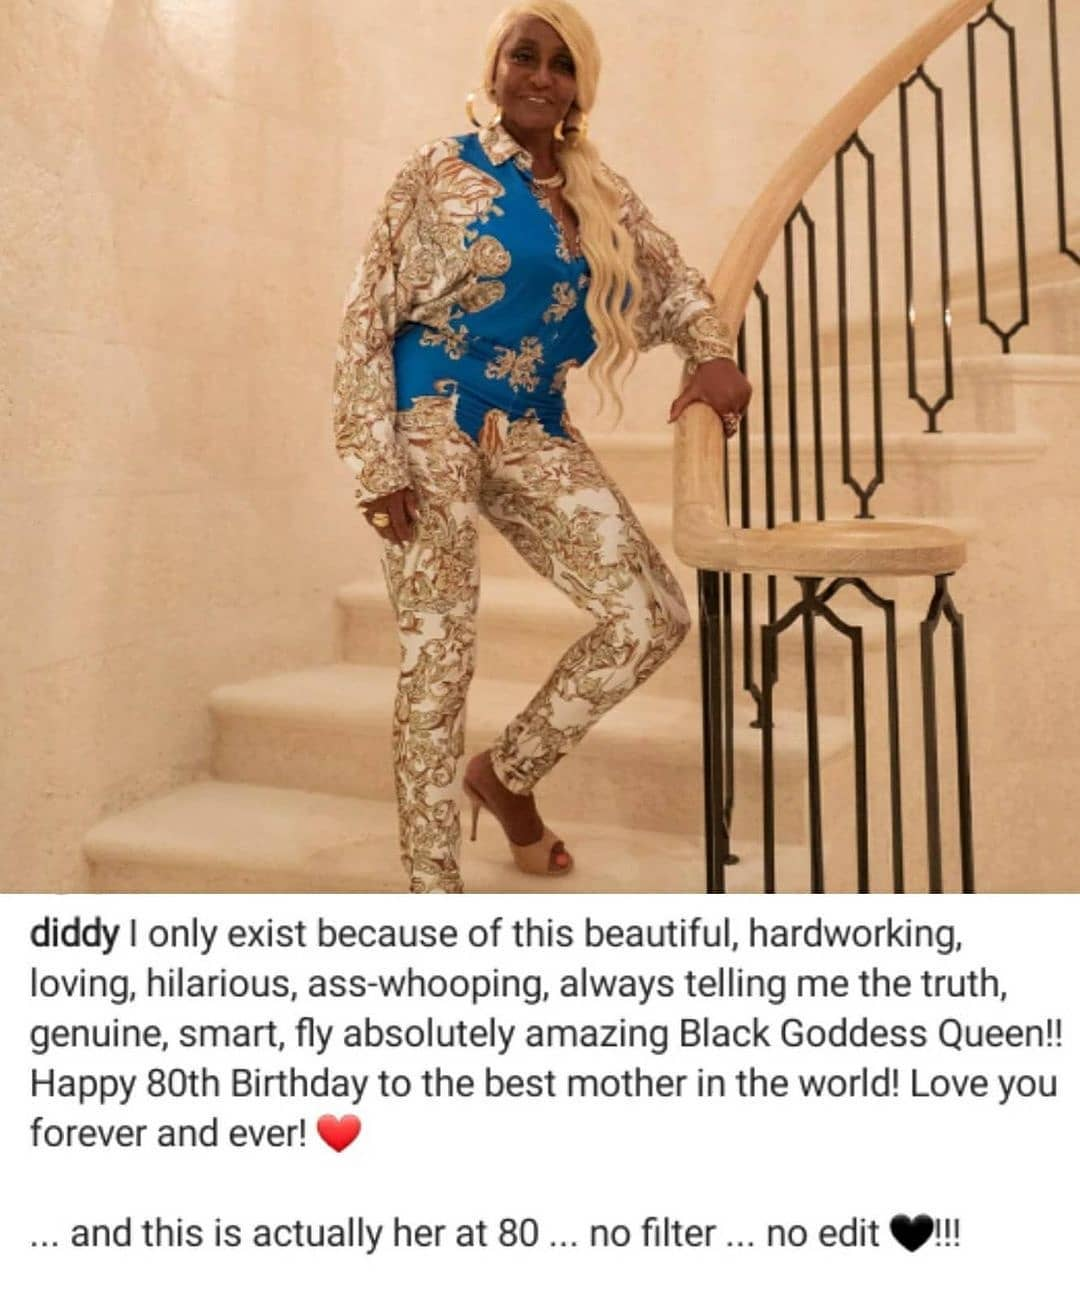 Diddy celebrates his 80-year-old mother. She looks amazing